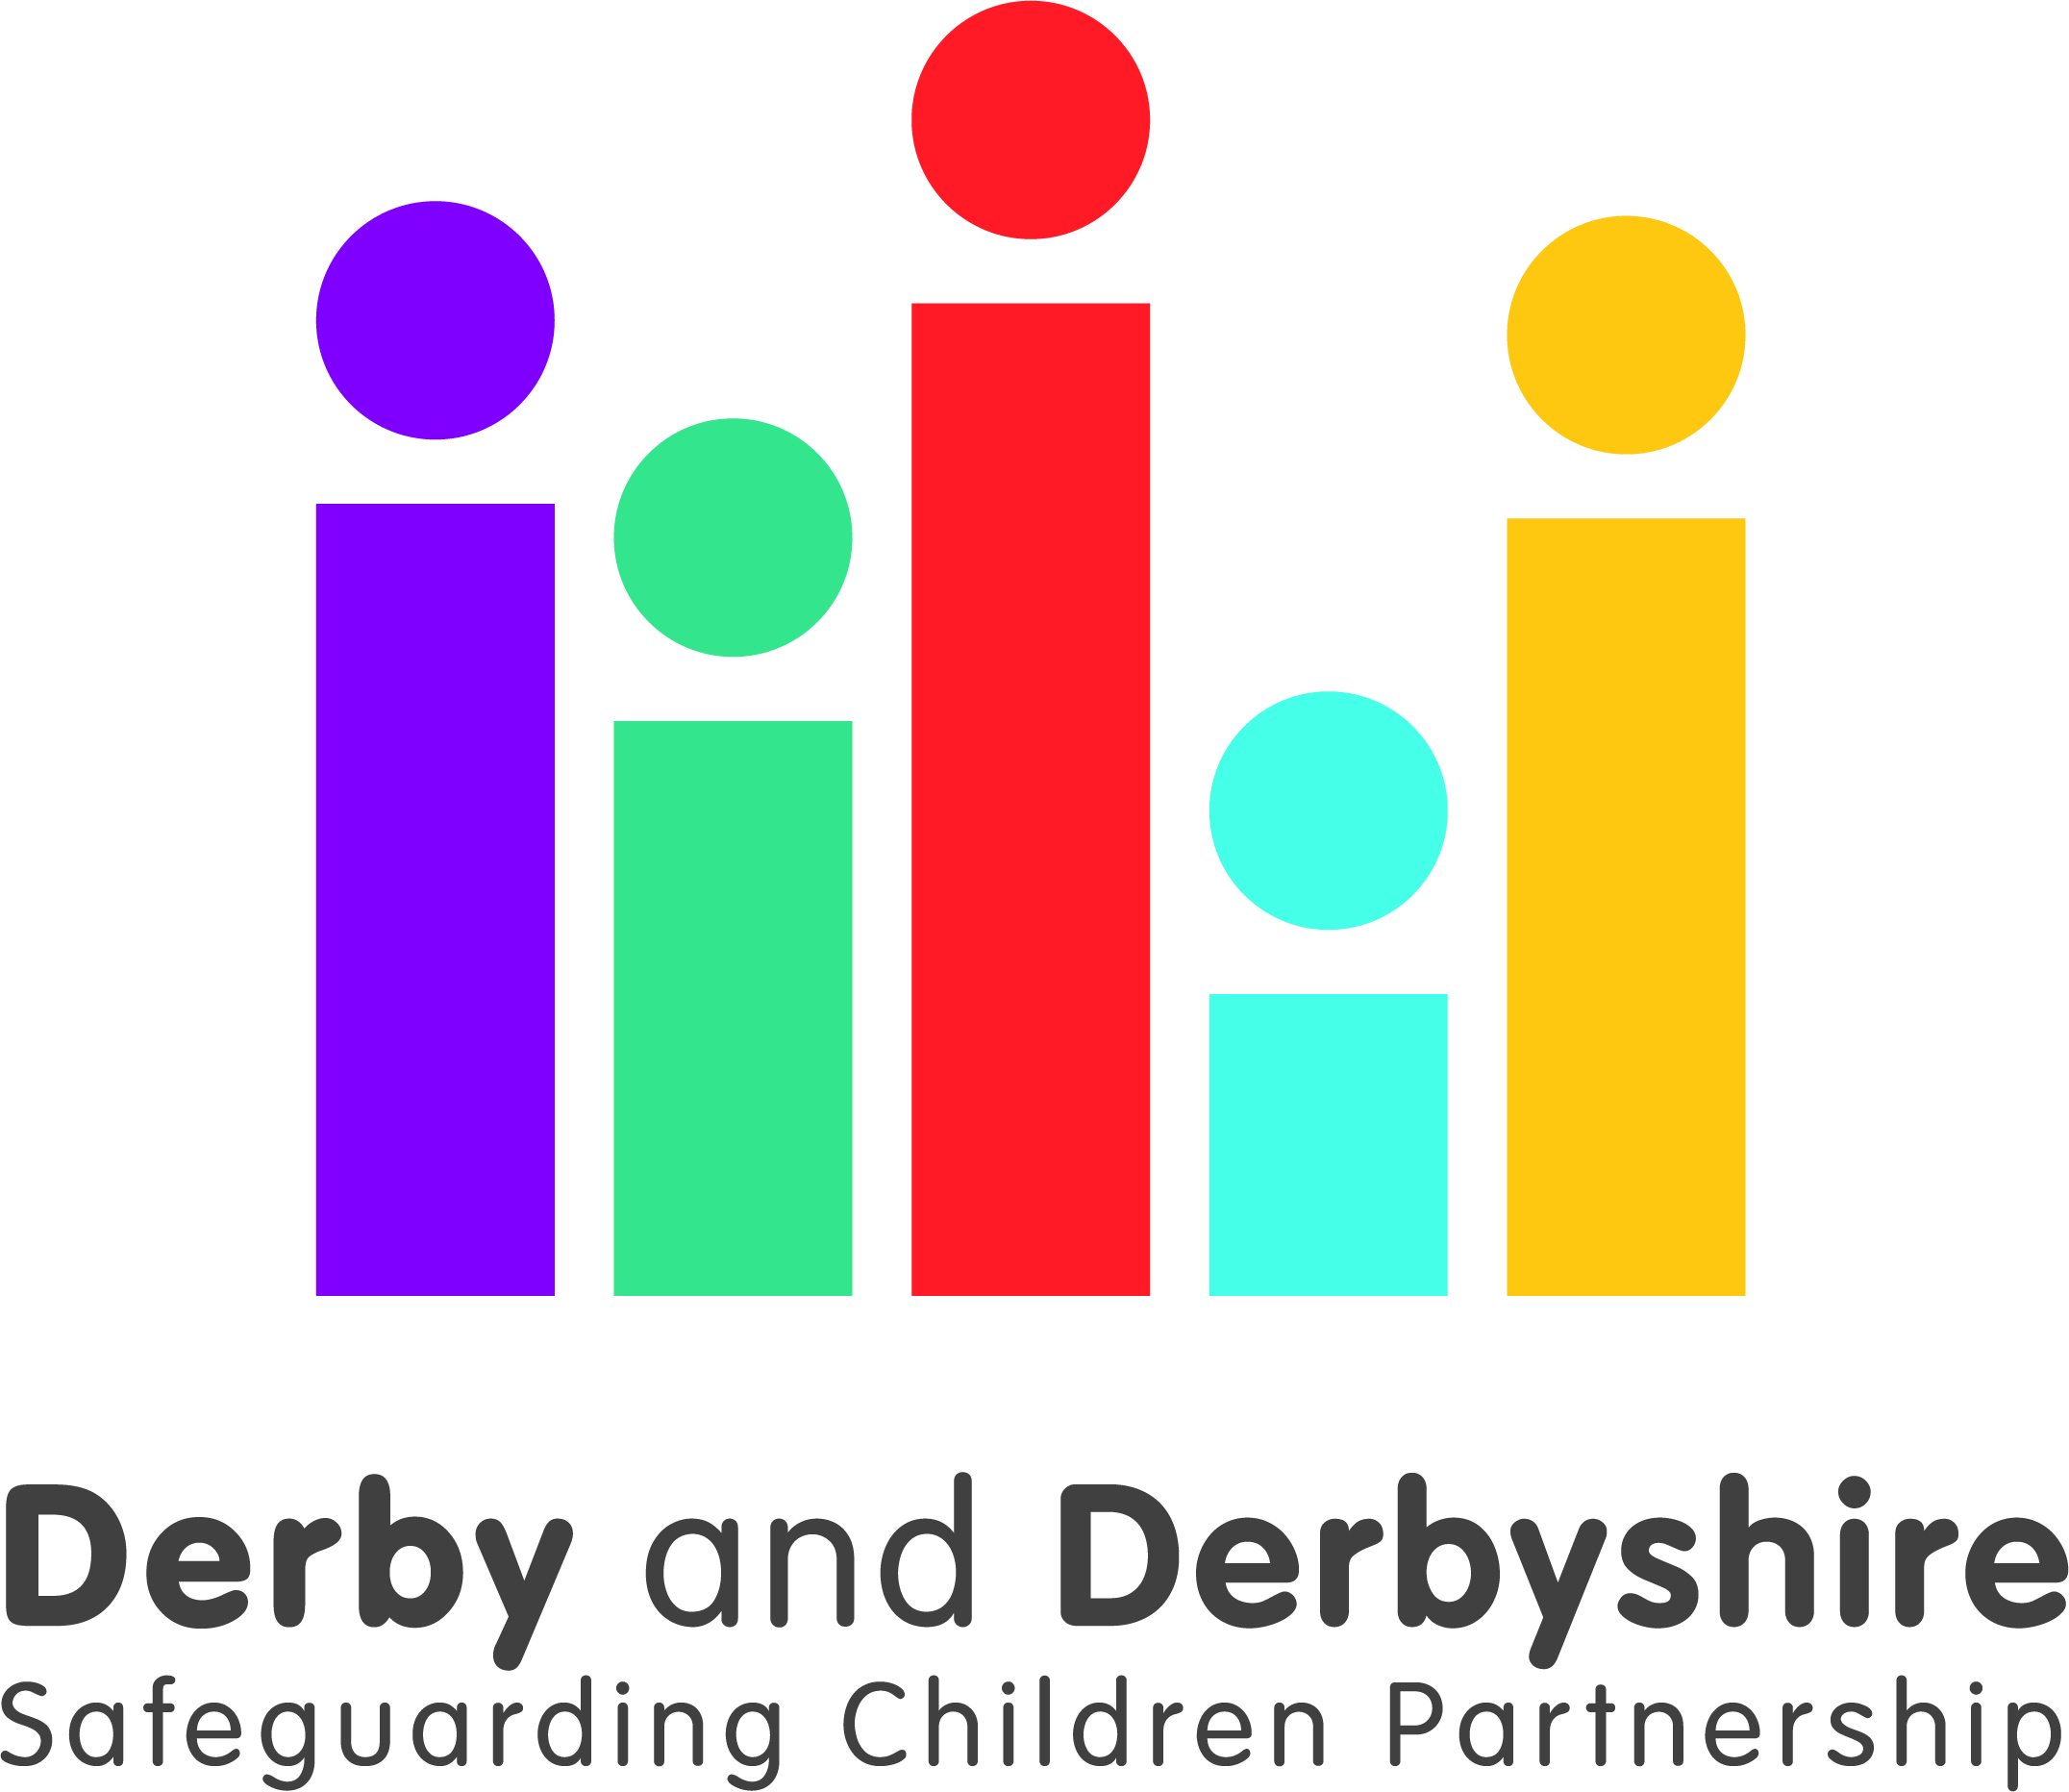 Derby and Derbyshire Safeguarding Childrens Partnership Logo